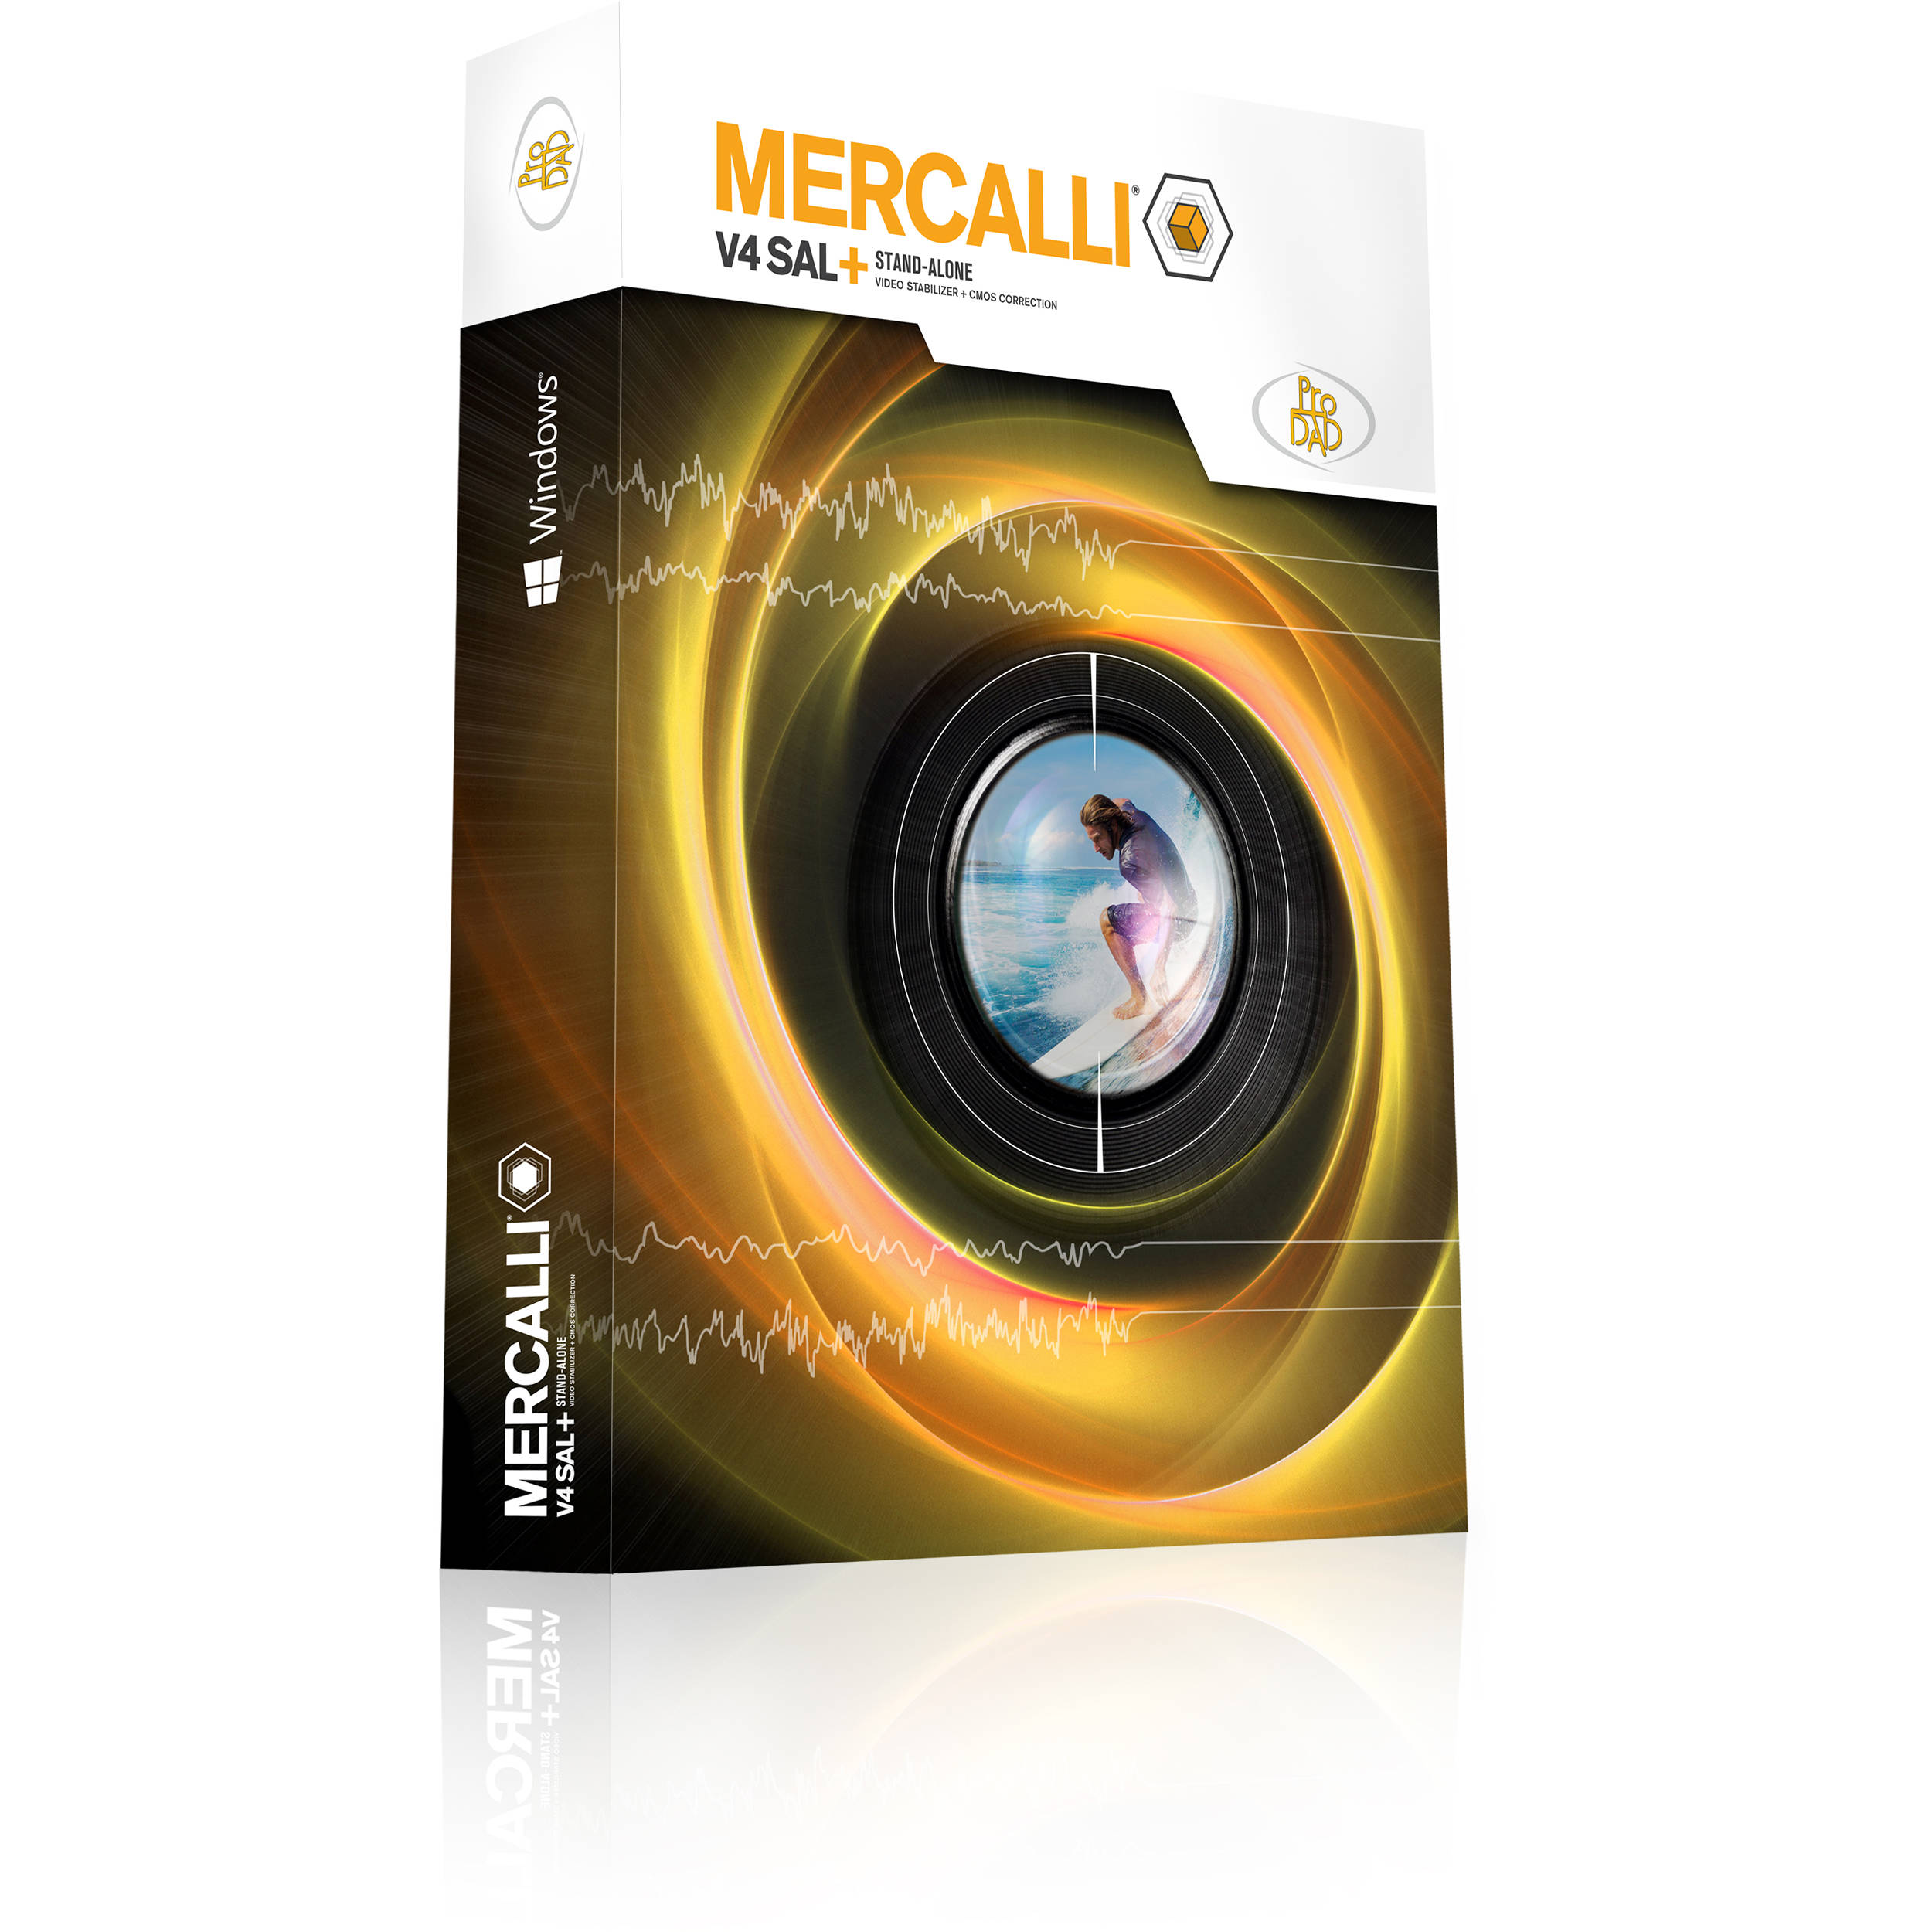 how much is proDAD Mercalli 3 for mac?